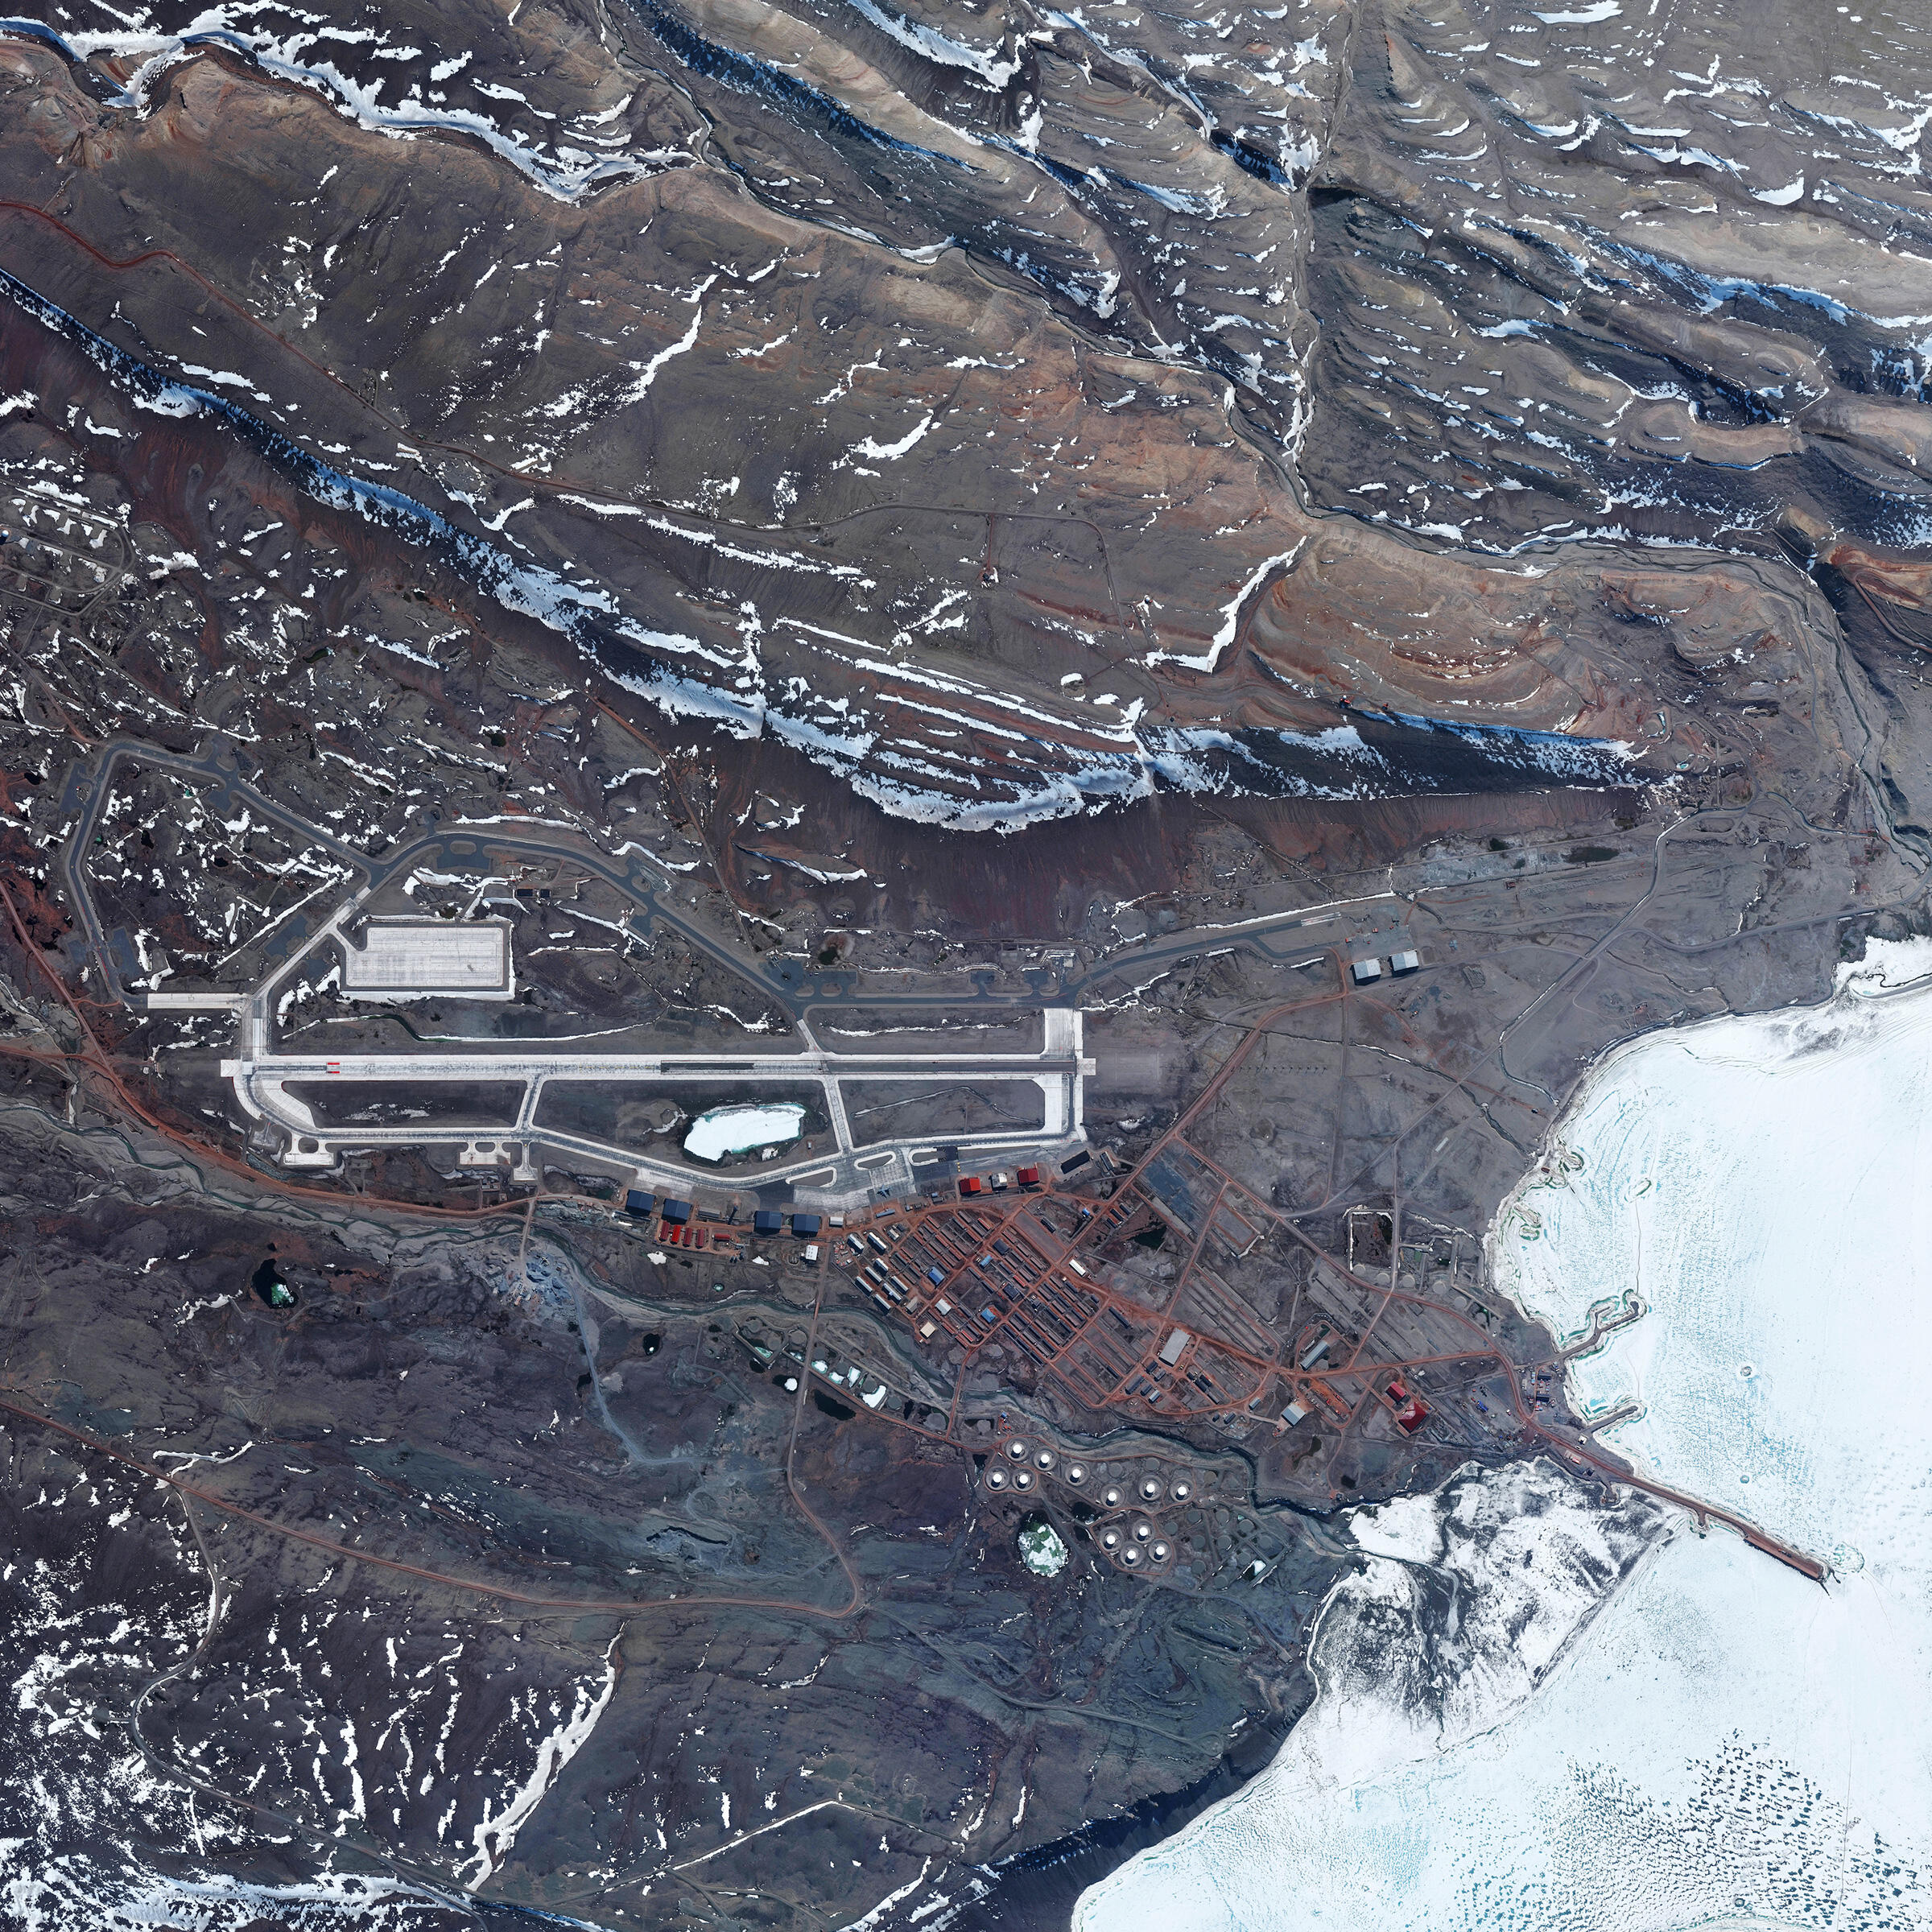 US Thule Air Base, Greenland. Daily Overview | Satellite images (c) 2015, DigitalGlobe, Inc.